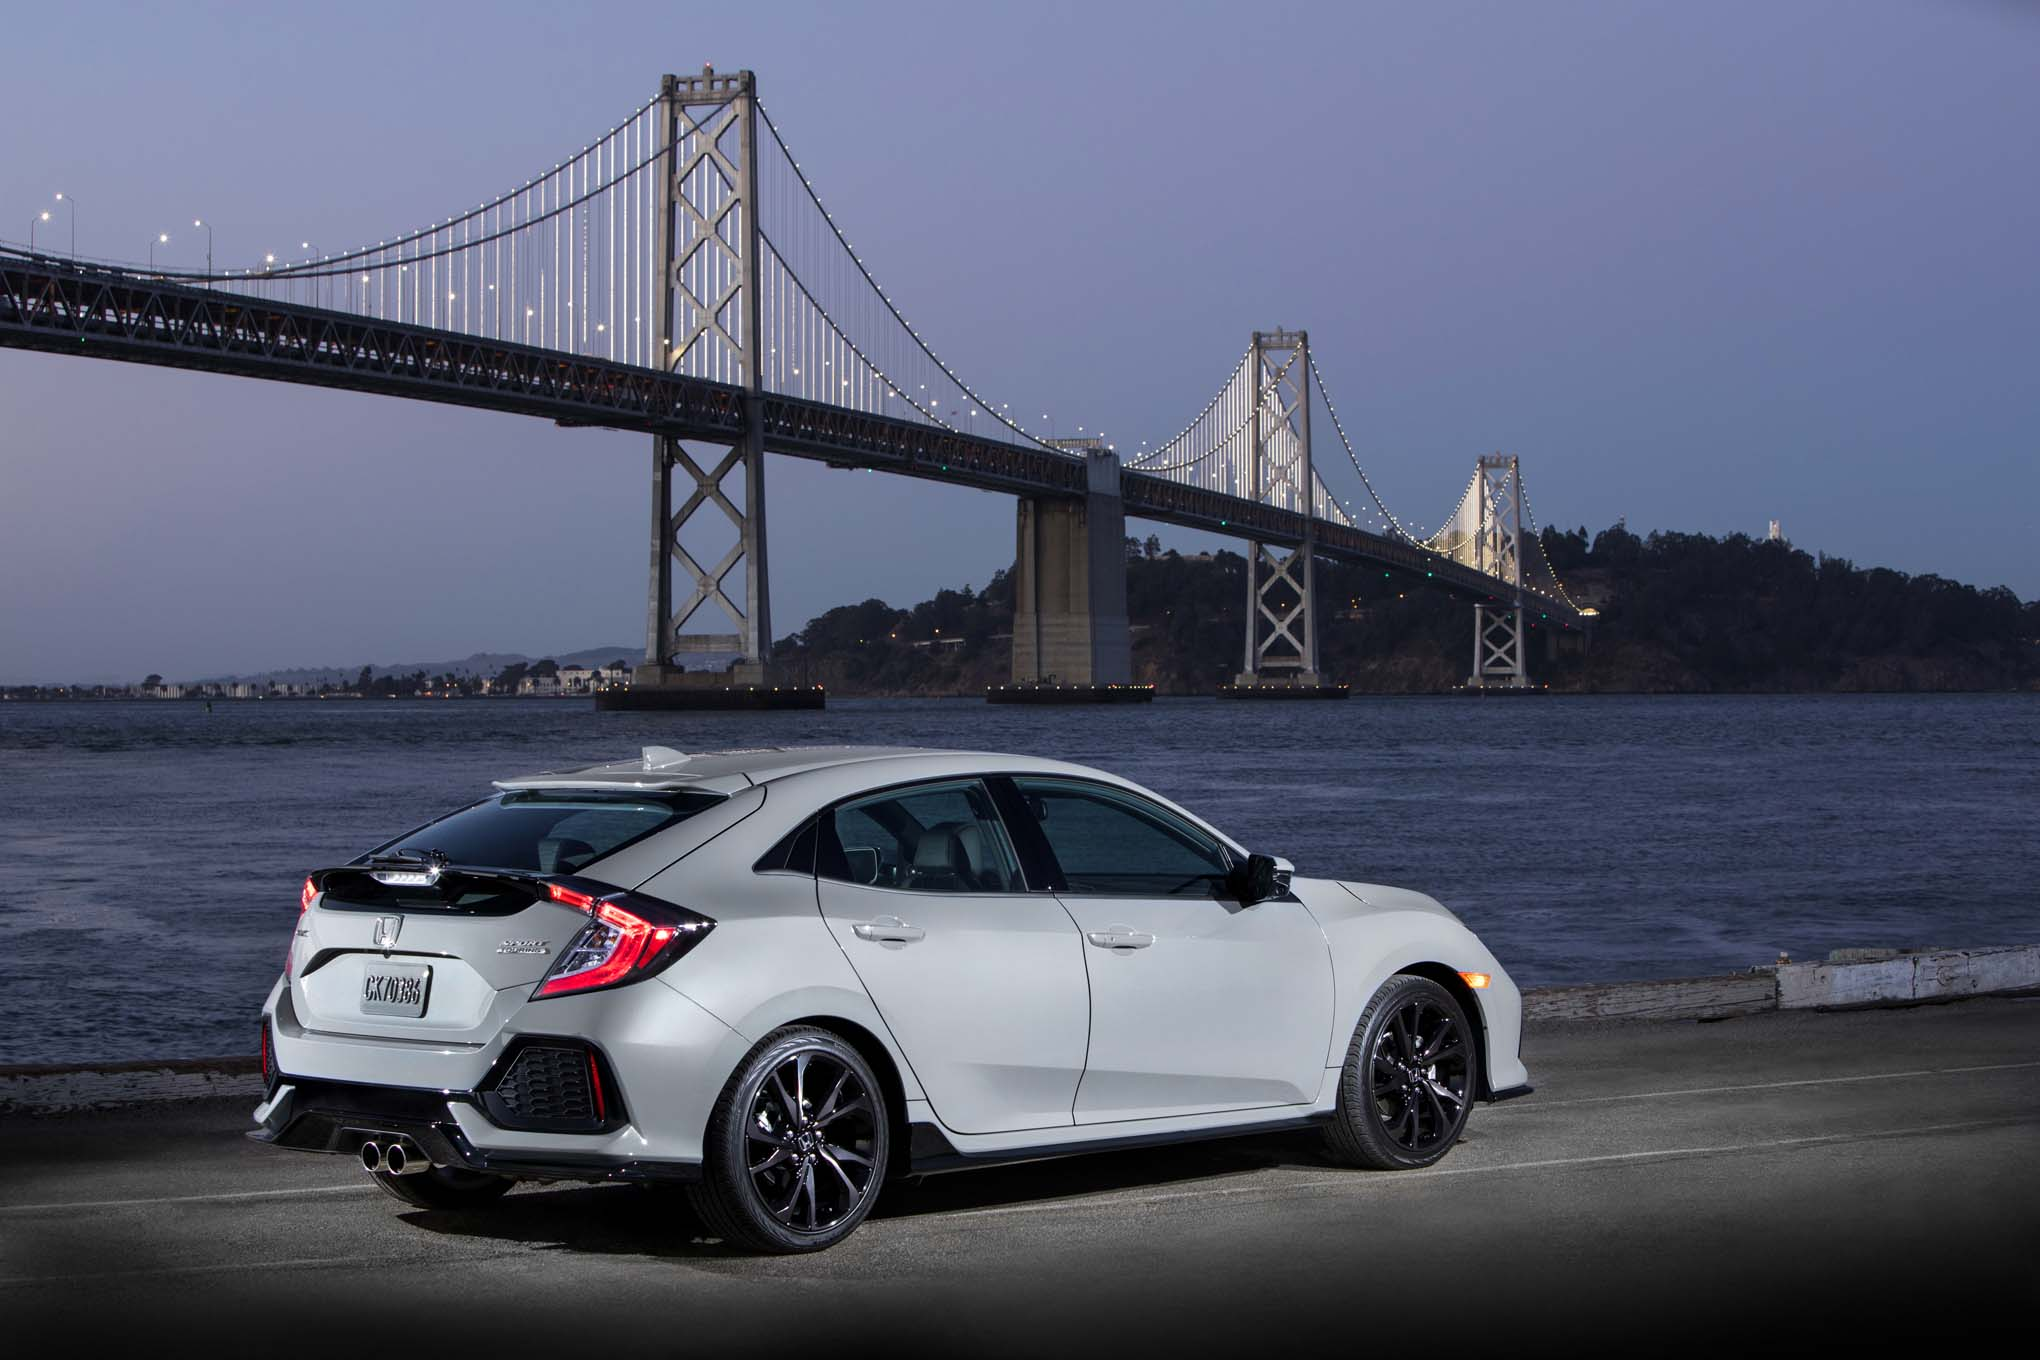 2017 honda civic hatchback ex l w navi first drive review. Black Bedroom Furniture Sets. Home Design Ideas